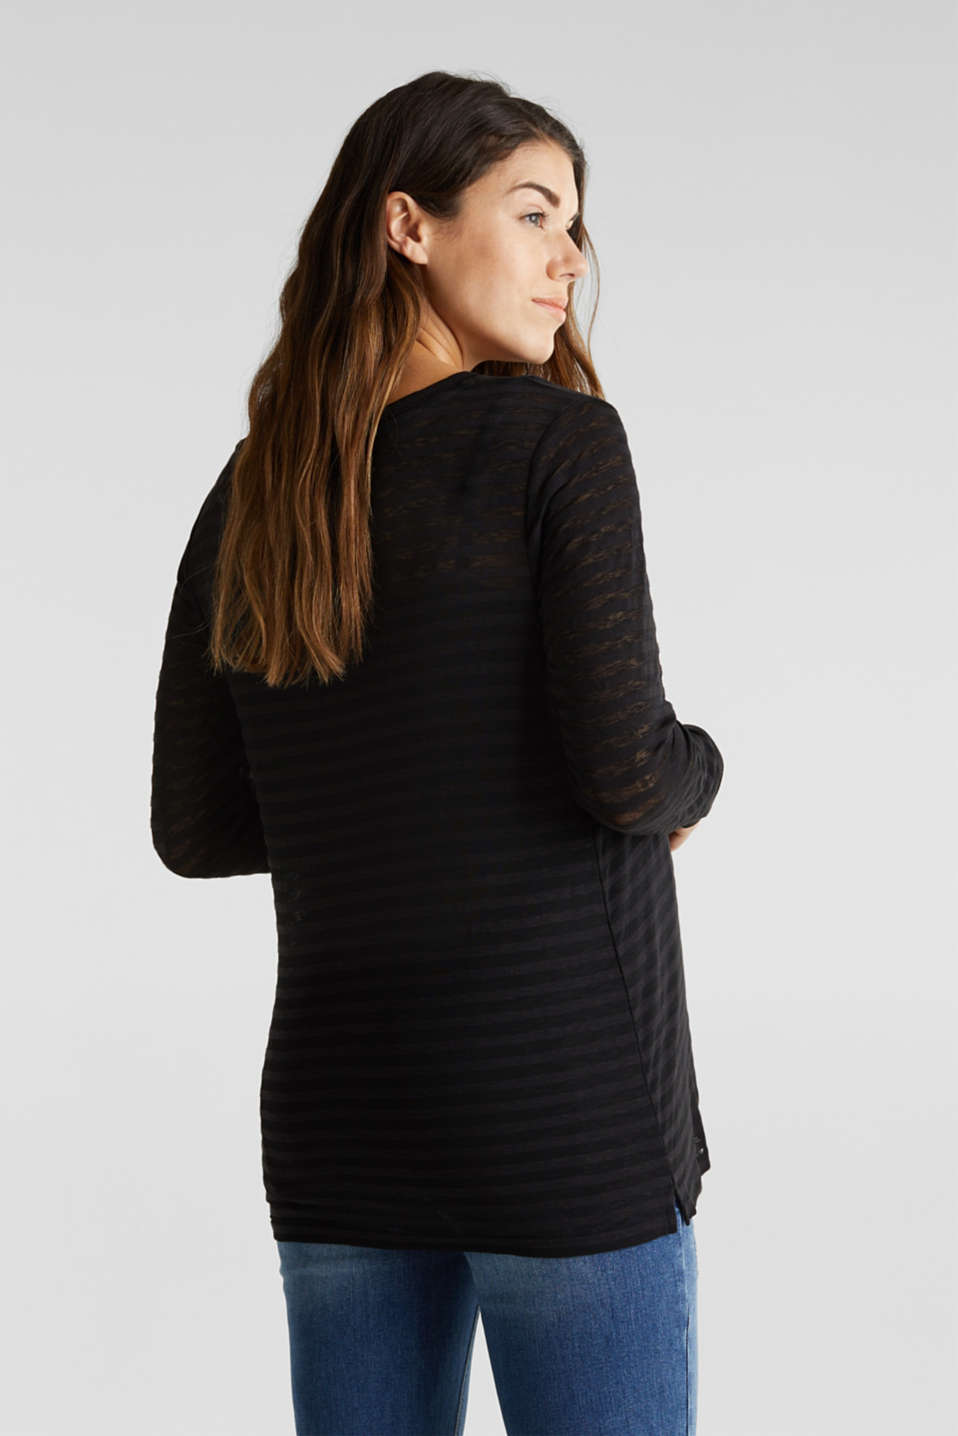 2 in 1: Long sleeve top with a nursing top, BLACK, detail image number 3